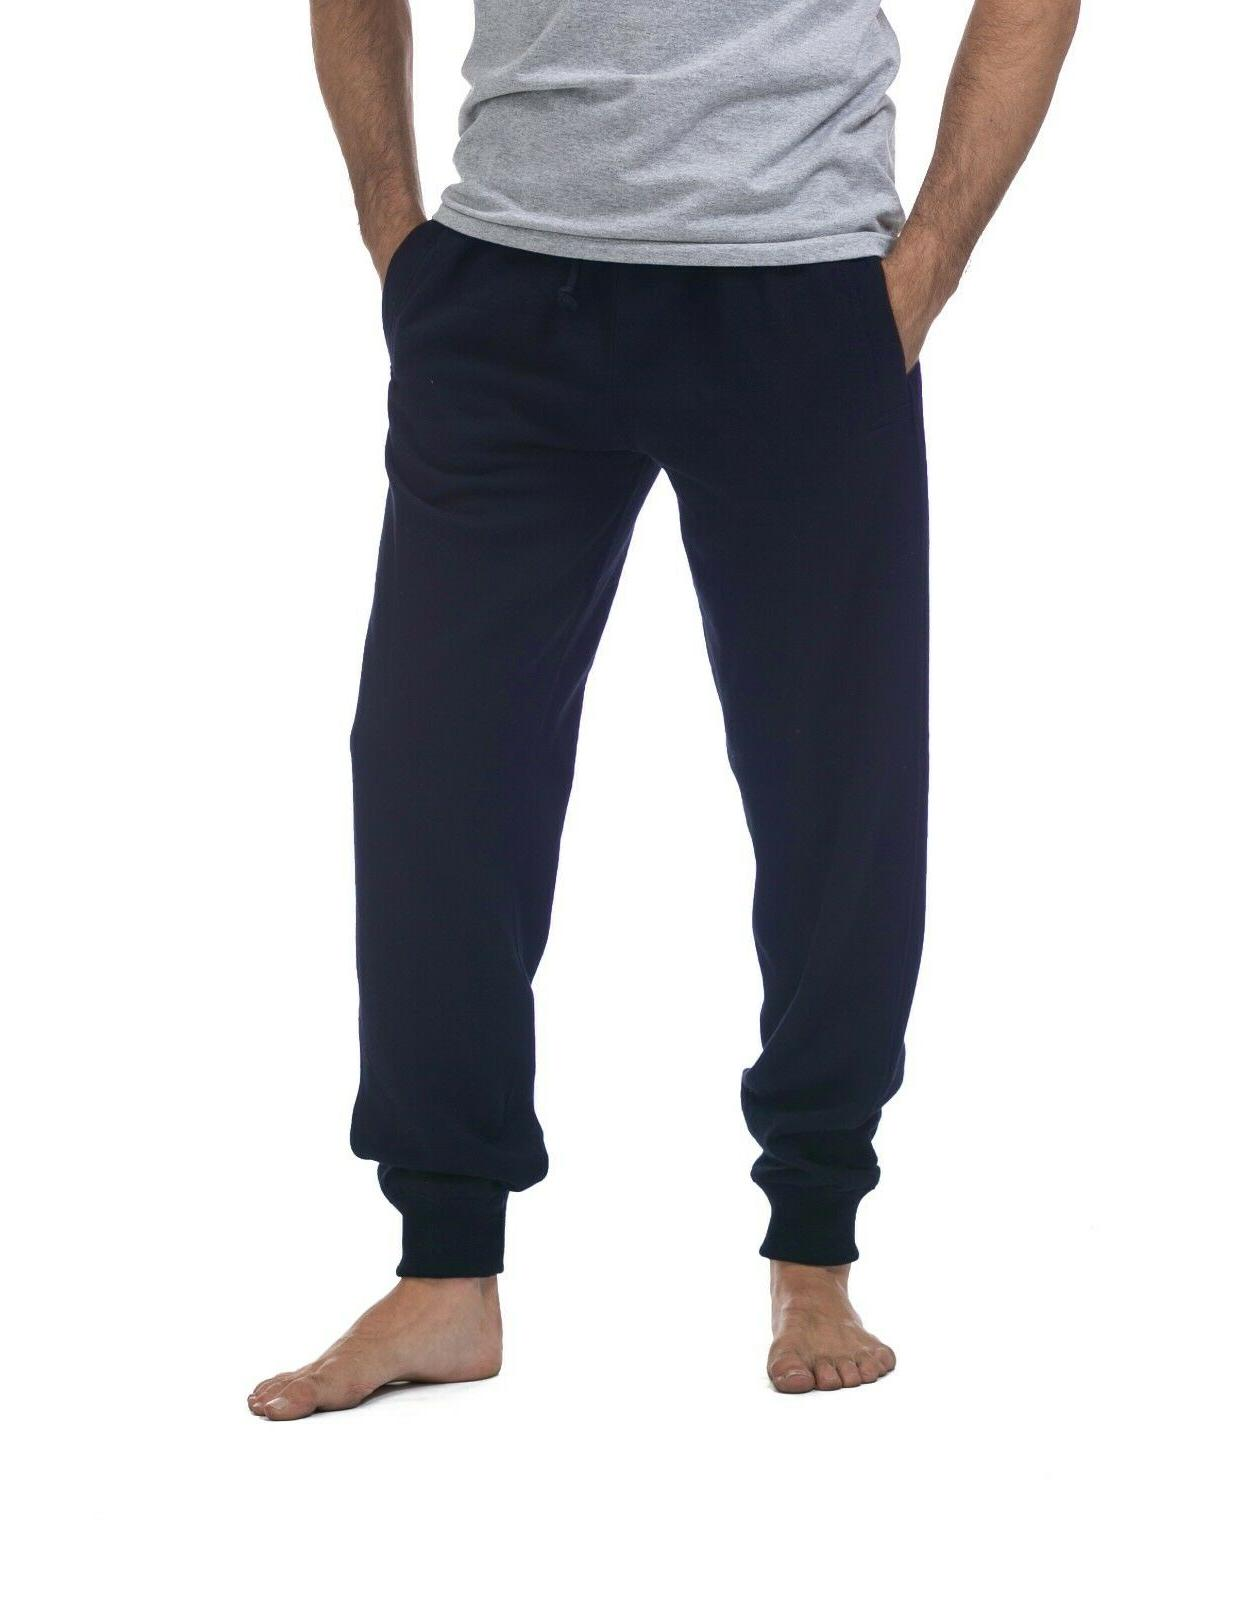 Pro Men's Jogger Fleece Pants